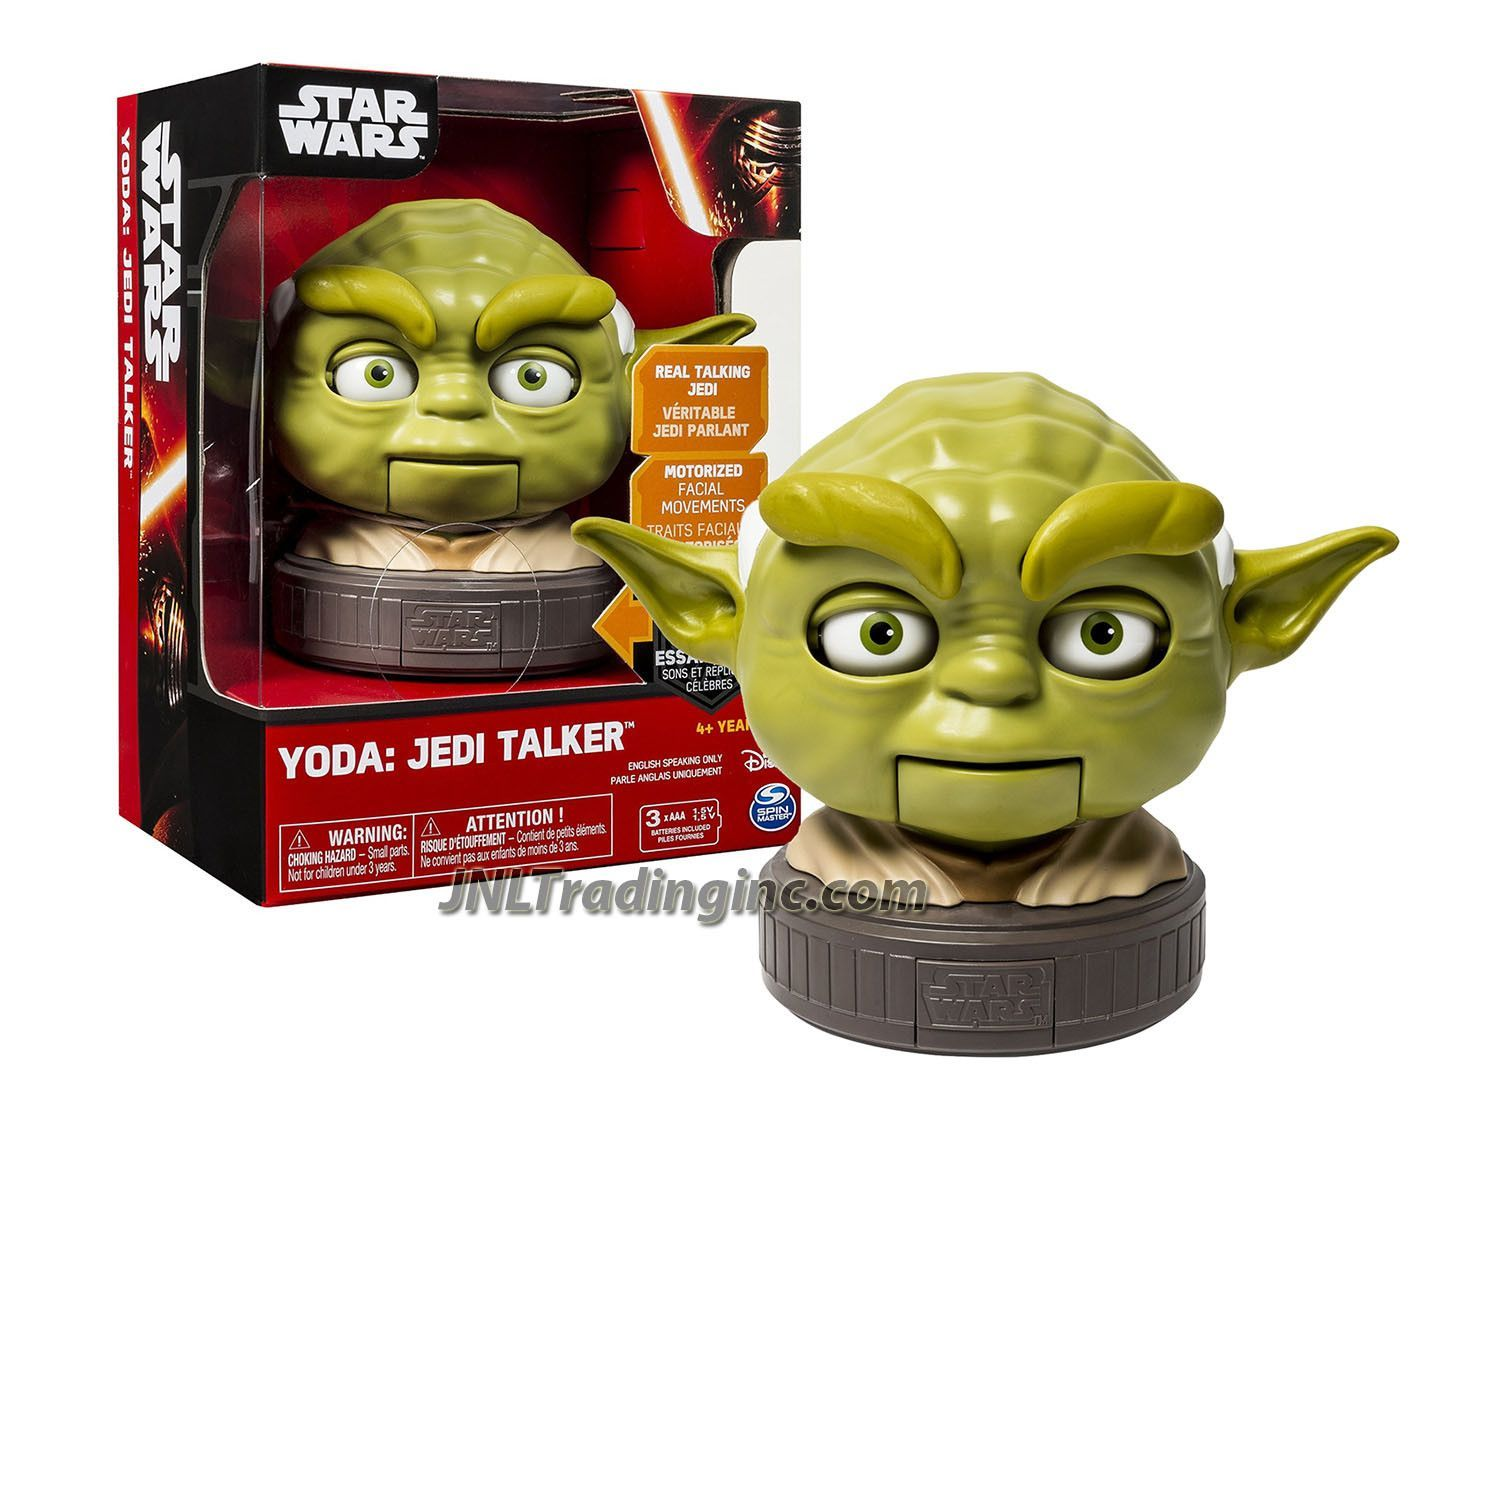 "Star Wars Real Talking Jedi with Motorized Facial Movement 5-1/2"" Tall Figure - YODA the Jedi Talker"